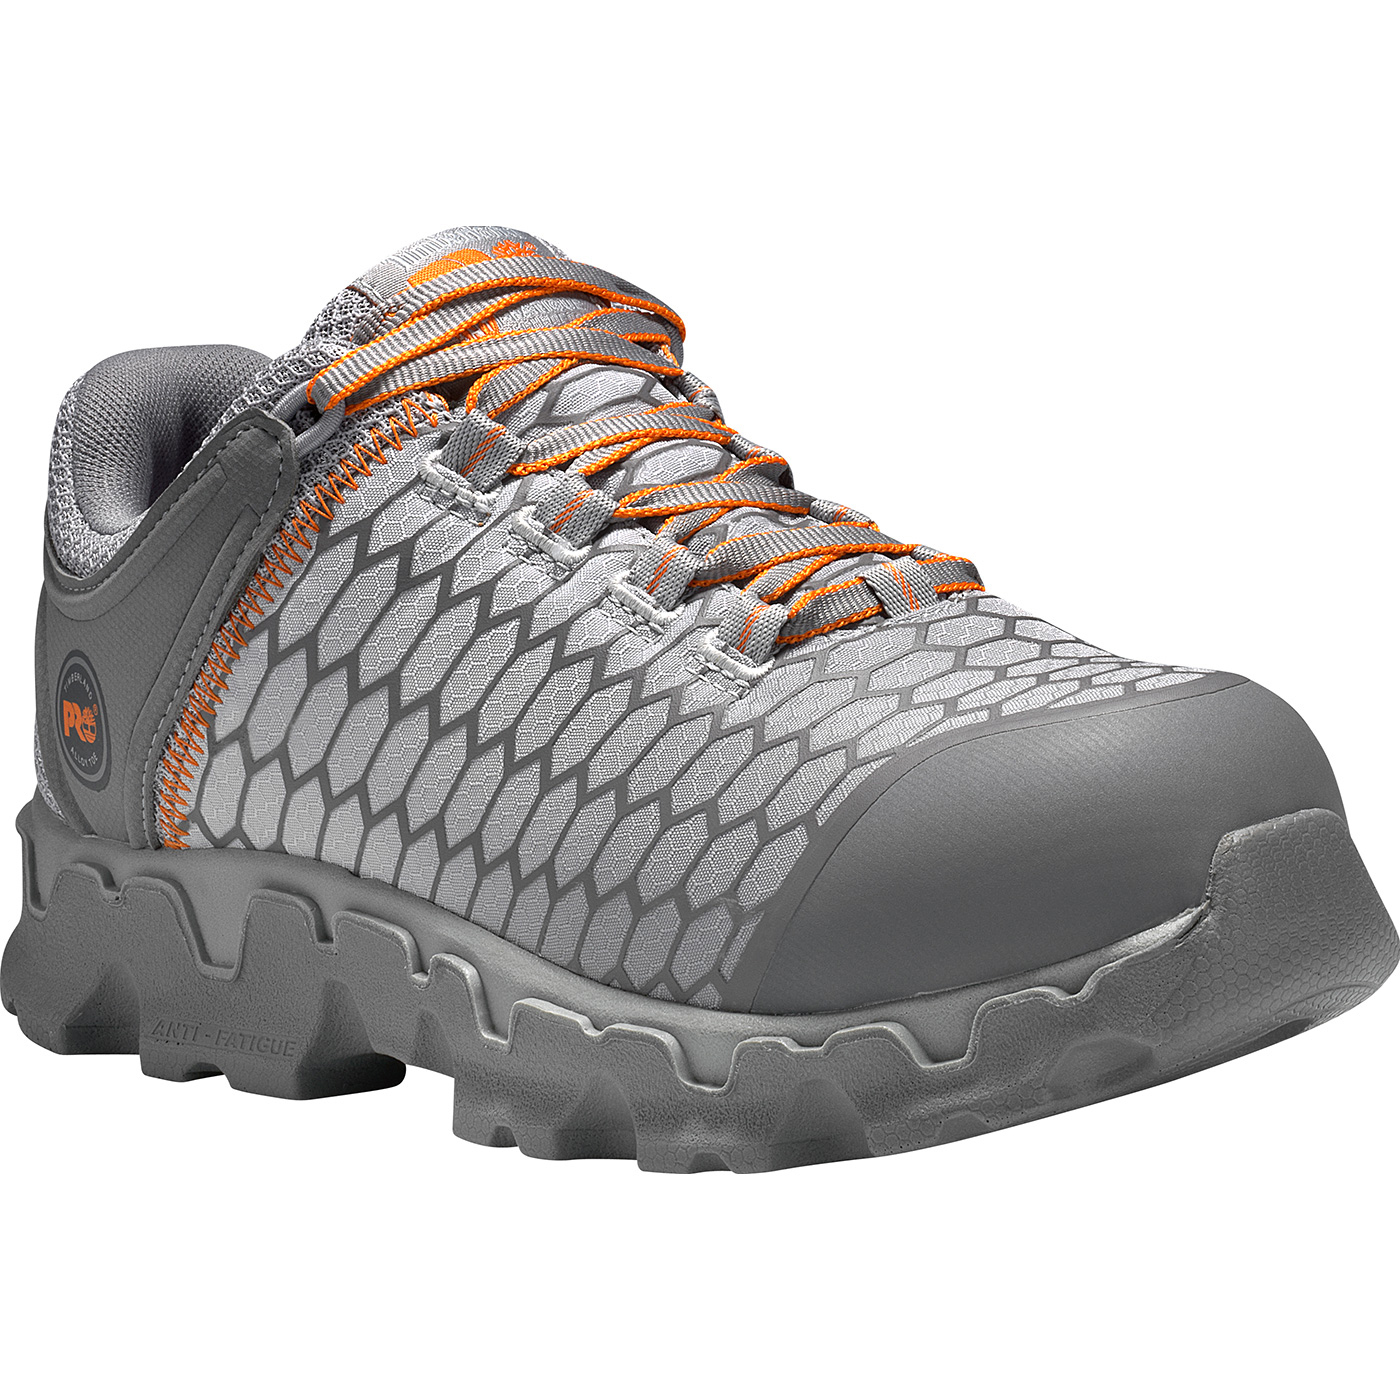 5dcce3e41a7 QUICKFIT COLLECTION: Timberland PRO Powertrain Sport Women's CSA Alloy Toe  Static-Dissipative Work Shoe